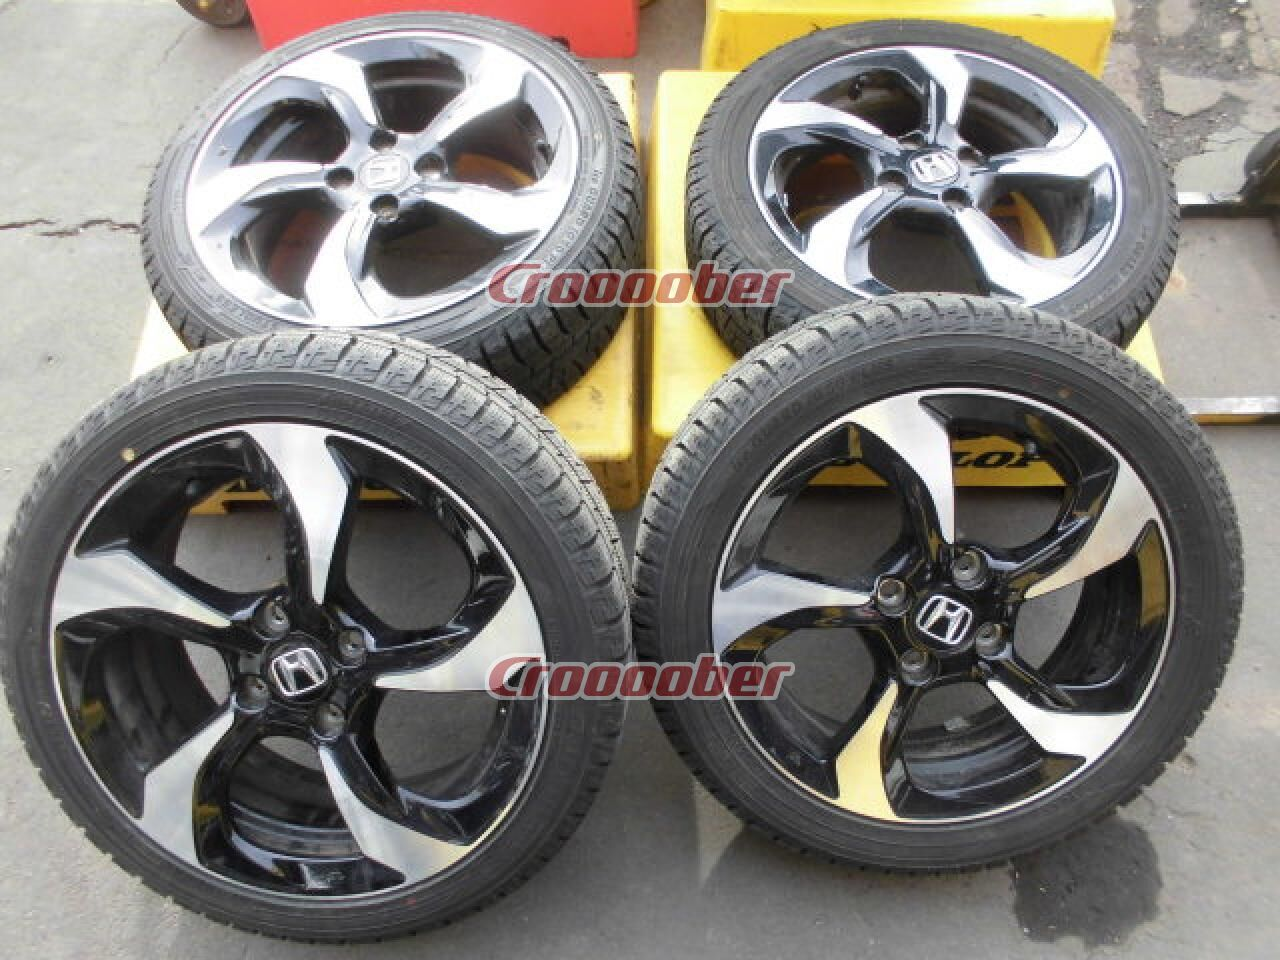 gt004 146 front and rear inches difference honda s660 Α grade